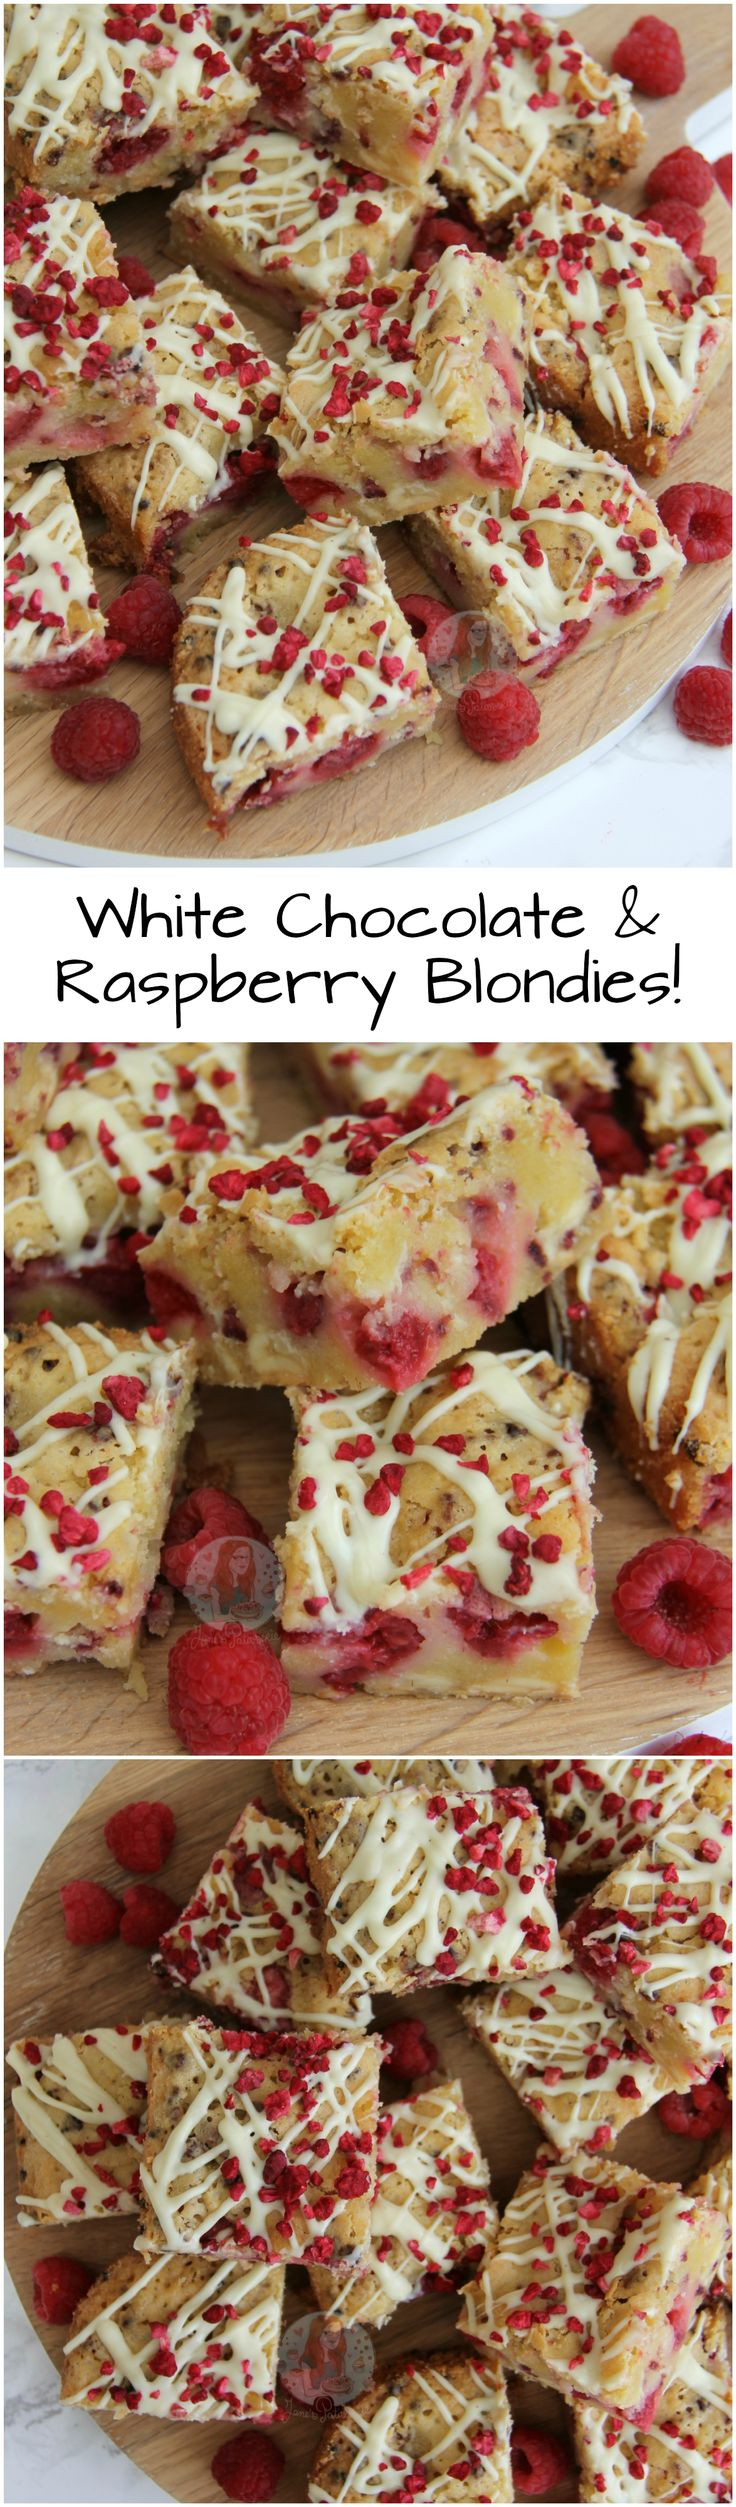 White Chocolate & Raspberry Blondies! ❤️ Easy, Delicious, Fruity and Chocolatey… What more could you want?! White Chocolate and Raspberry Blondies that everyone will adore and love!